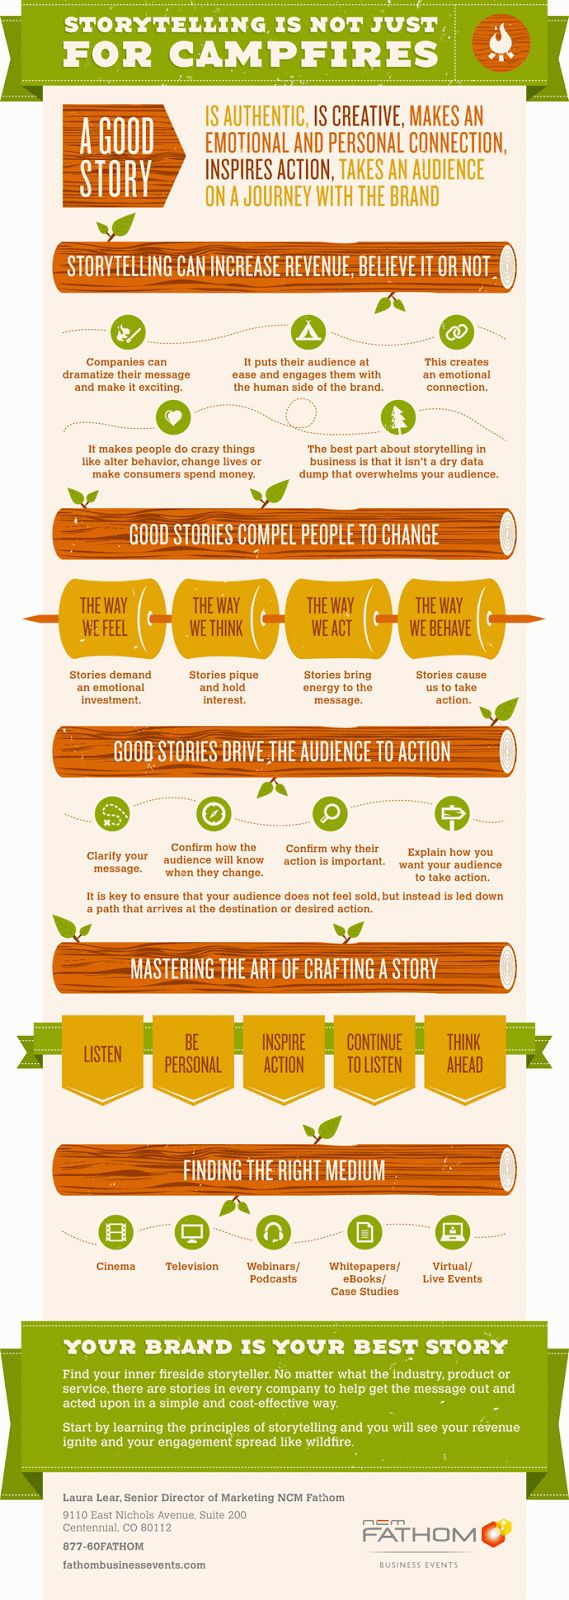 Storytelling is not just around the campfire